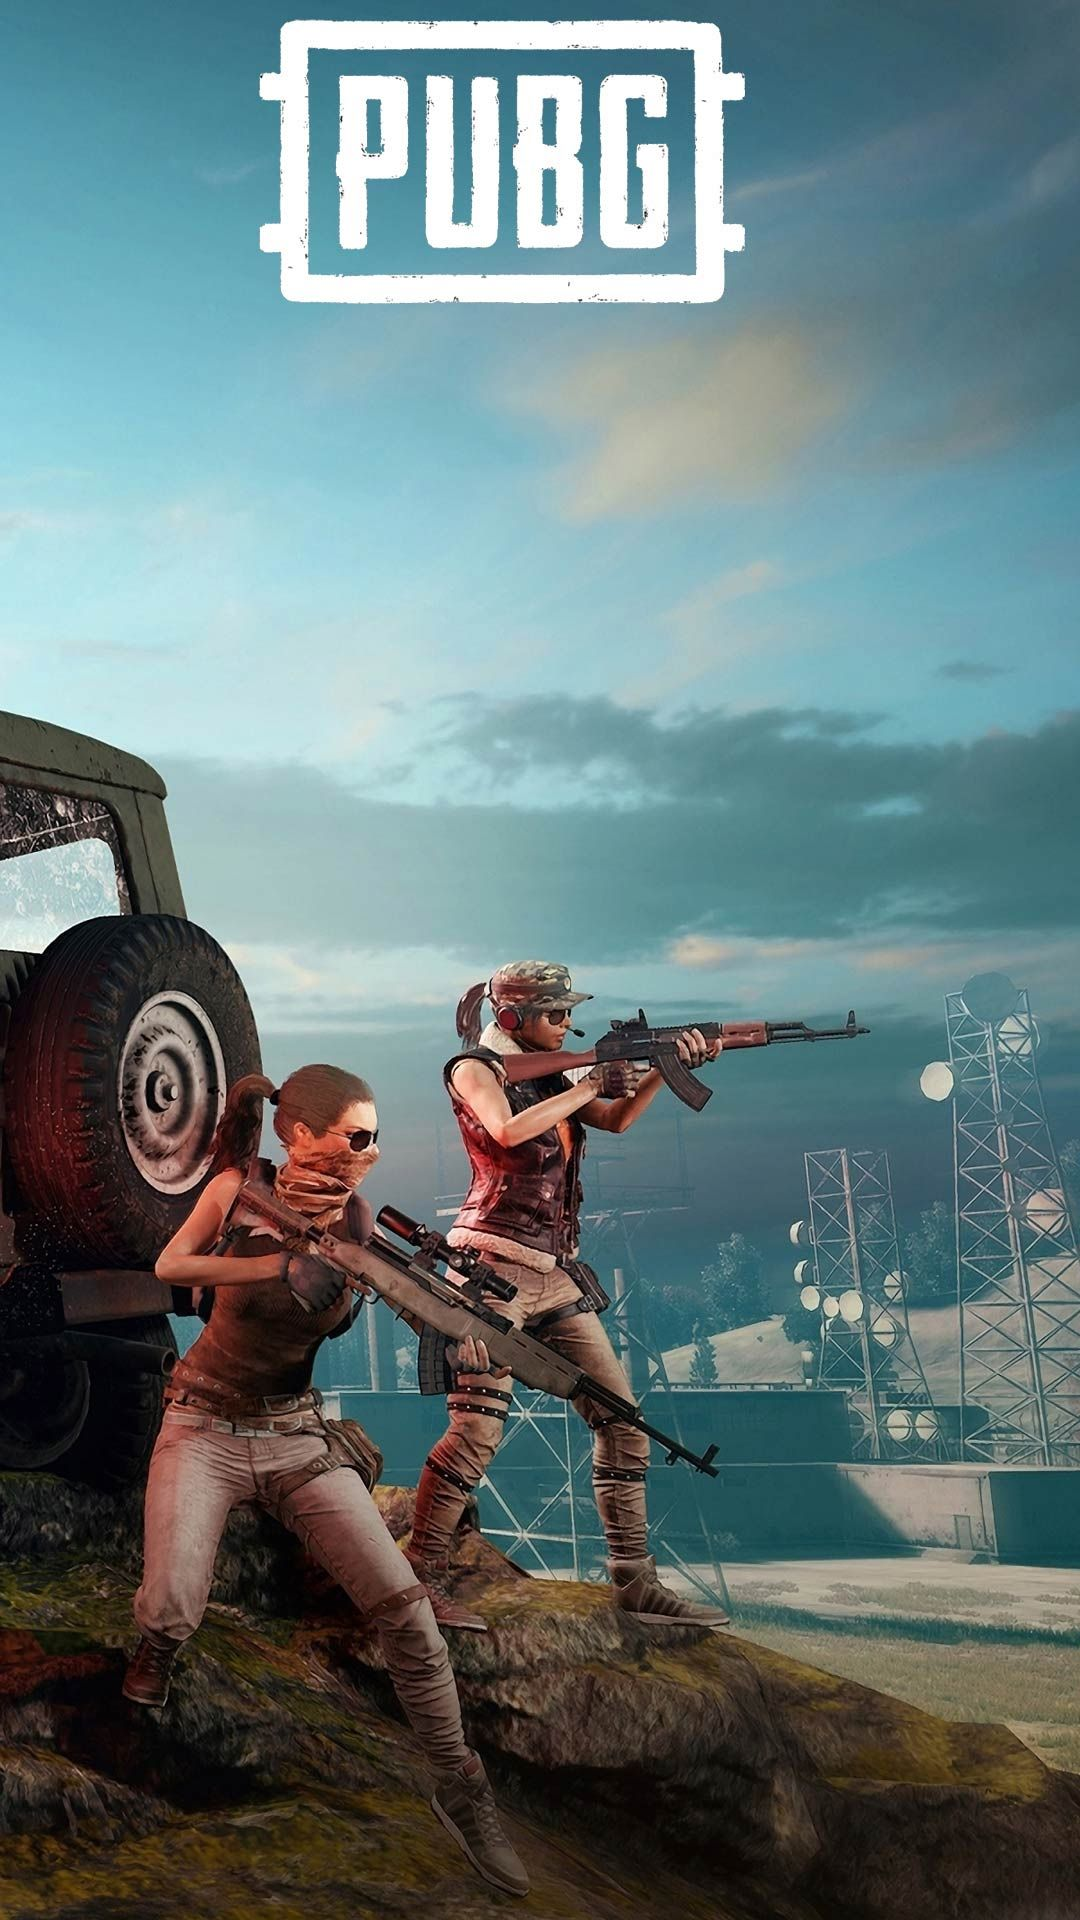 How To Play Pubg Mobile On Pc Or Laptop Windows Mac Iphone Wallpaper Pinterest Mobile Wallpaper Technology Wallpaper